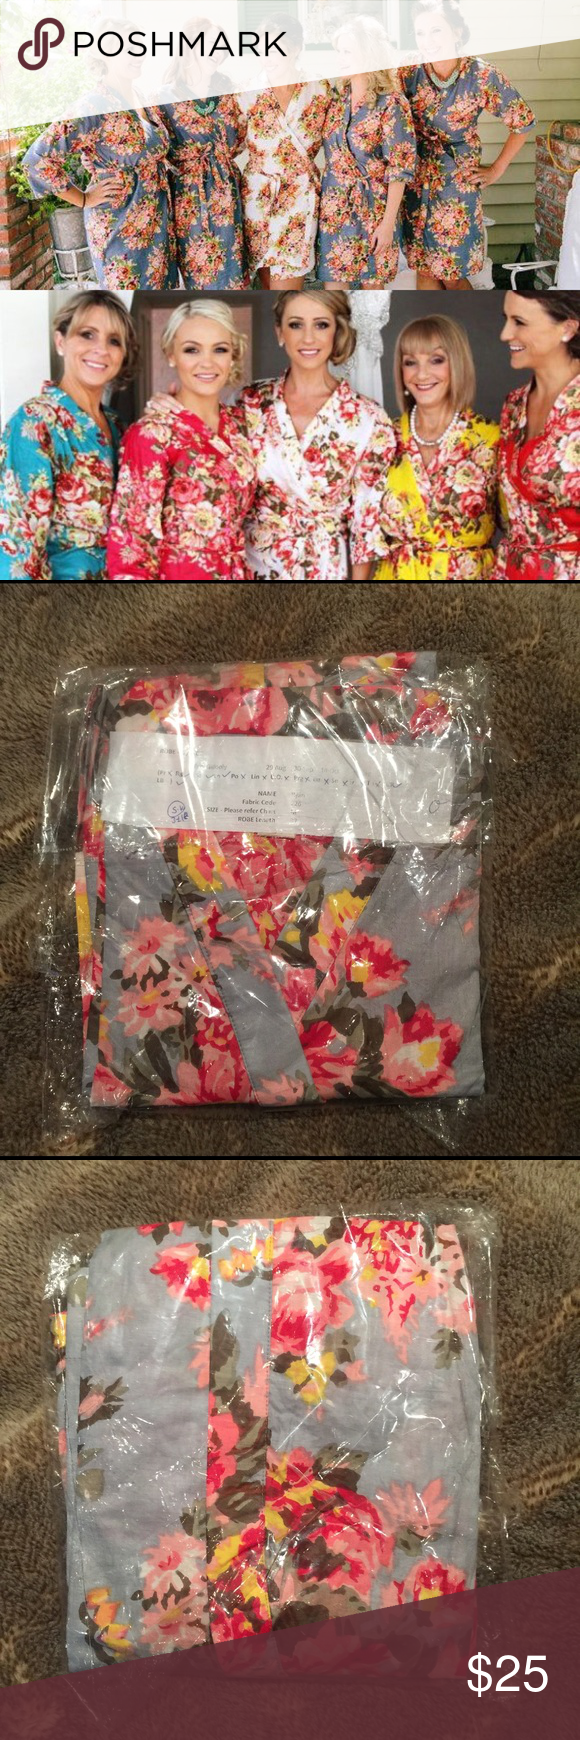 Cotton Floral Robe Floral Print Kimono Style Robe | Wrap Style with Interior Ties to Hold Shut | Belt | Knee Length | Size Medium (but sizing is flexible due to style) | Grey Ground Color with Beautiful Colorful Flowers | New in Packaging | Never Worn | One of my bridesmaids was unable to attend so I have an extra leftover! | Last photo is my actual bridesmaids in this Robe color. Intimates & Sleepwear Robes